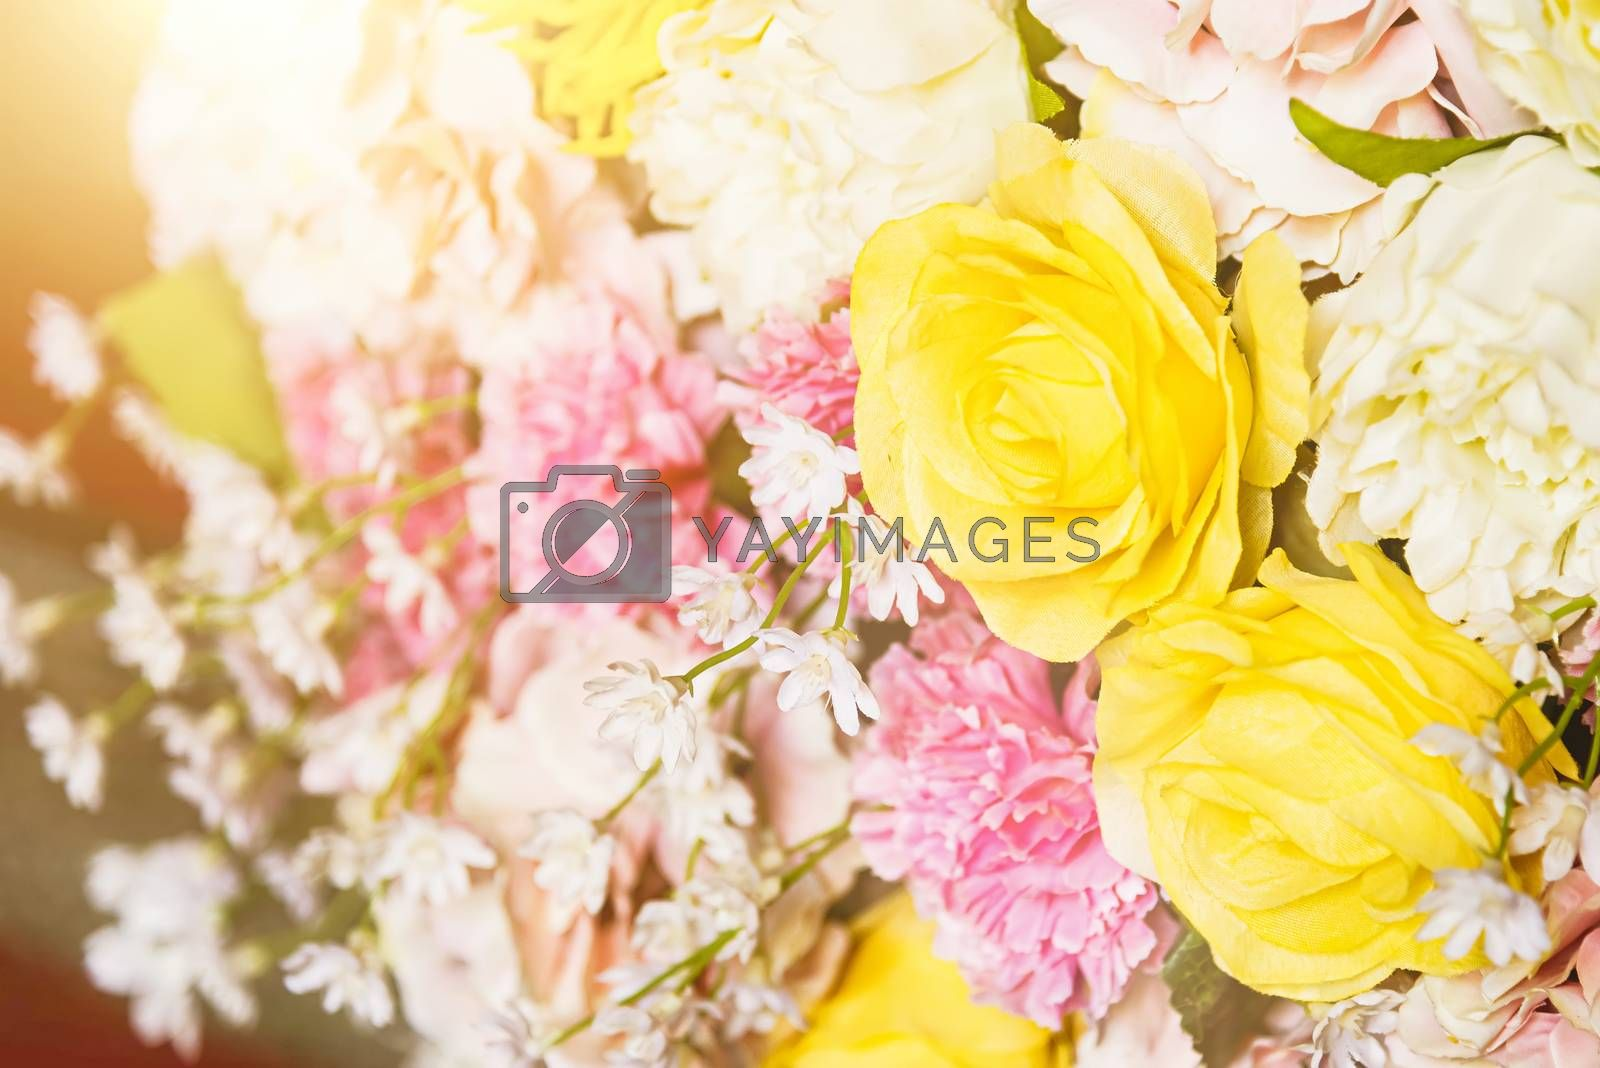 Petals flower rose white and pink bouquet retro postcard mood spring and summer background